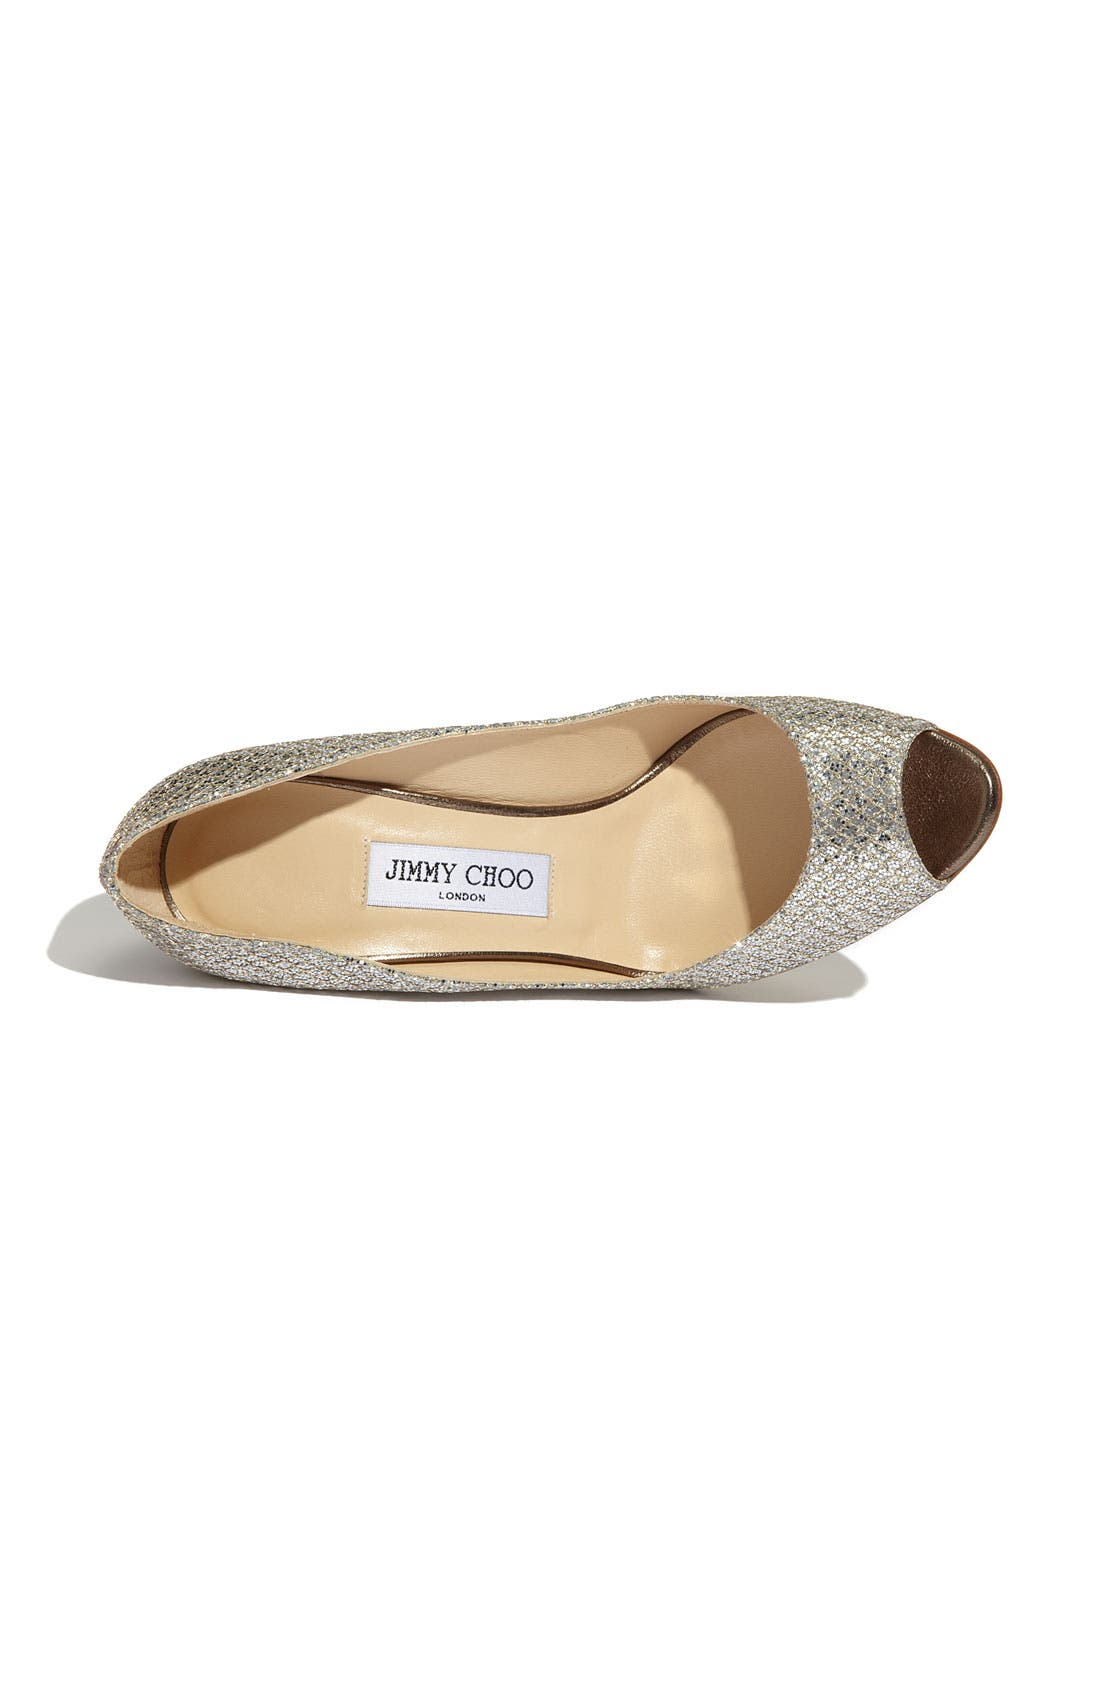 Alternate Image 3  - Jimmy Choo 'Bello' Glitter Wedge